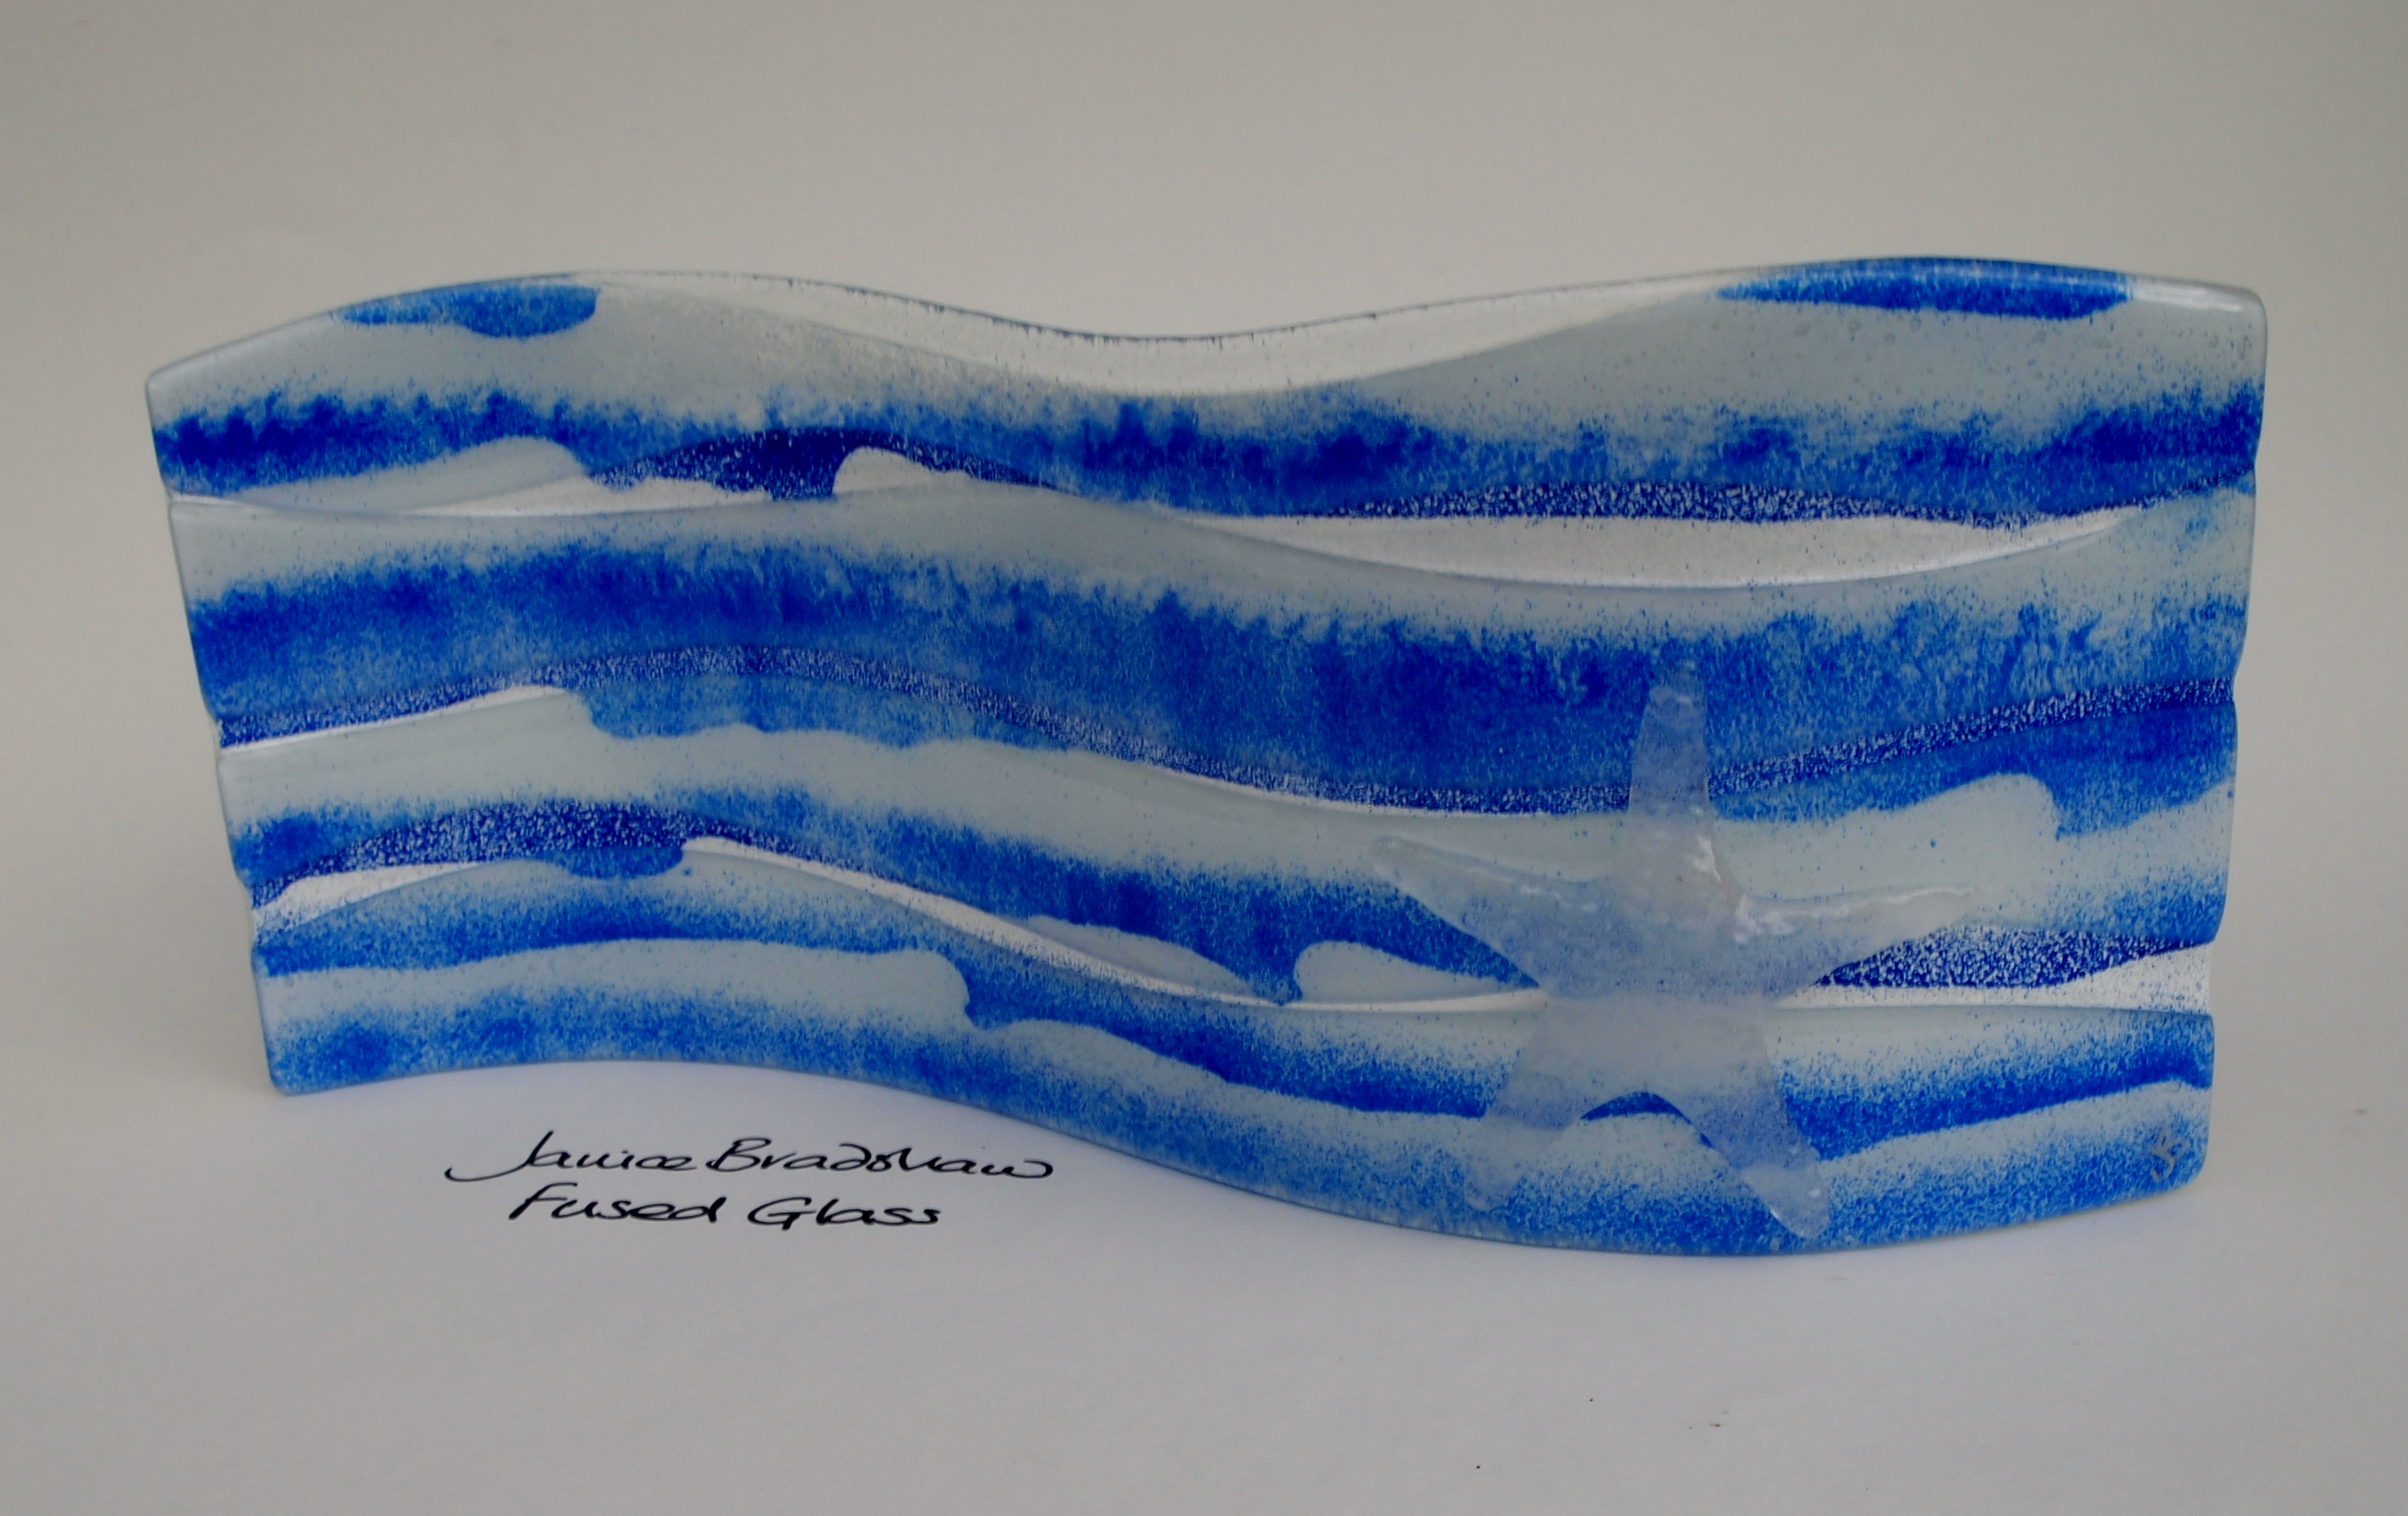 Fused Glass 'Coastal' Panel by Janice Bradshaw with large glass cast starfish 380x190mm